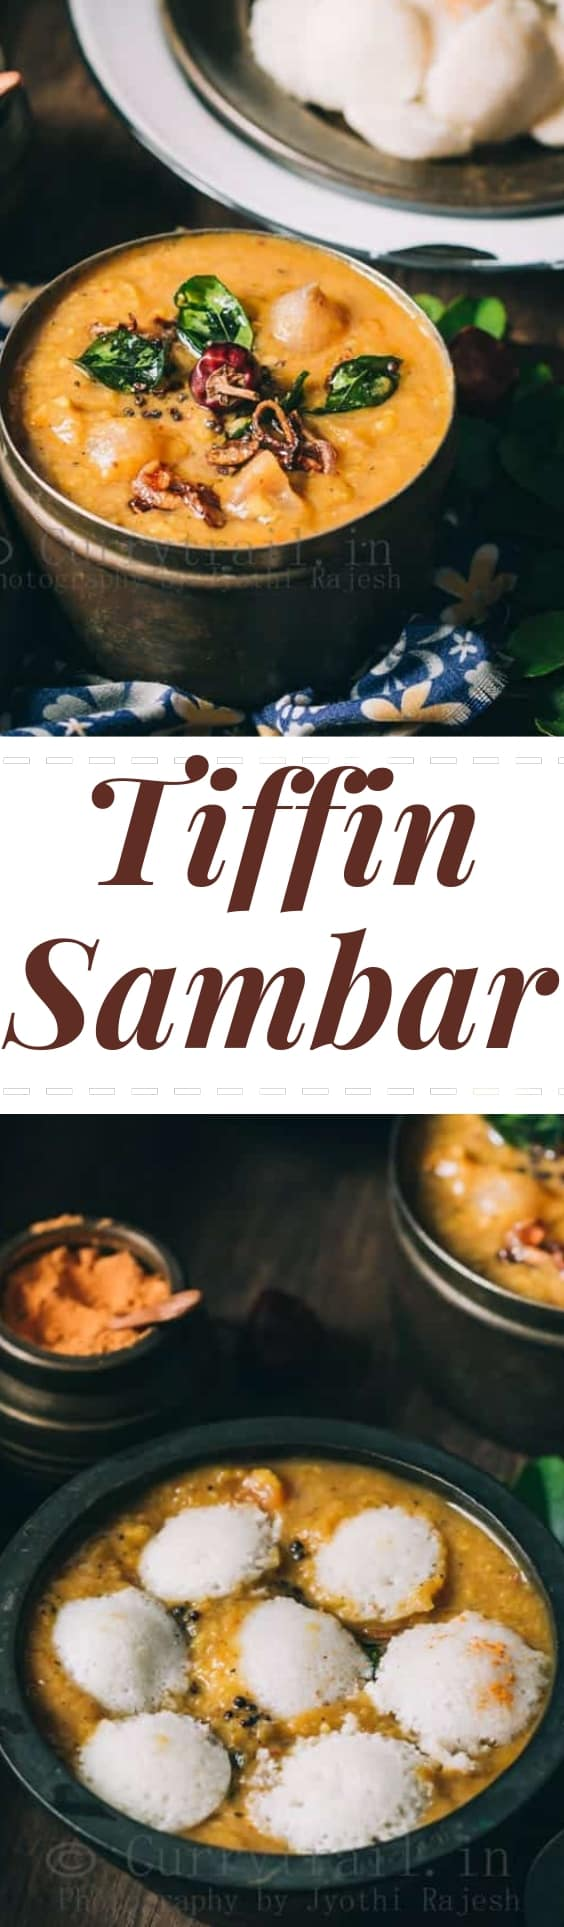 tiffin sambar with button idli with text overlay